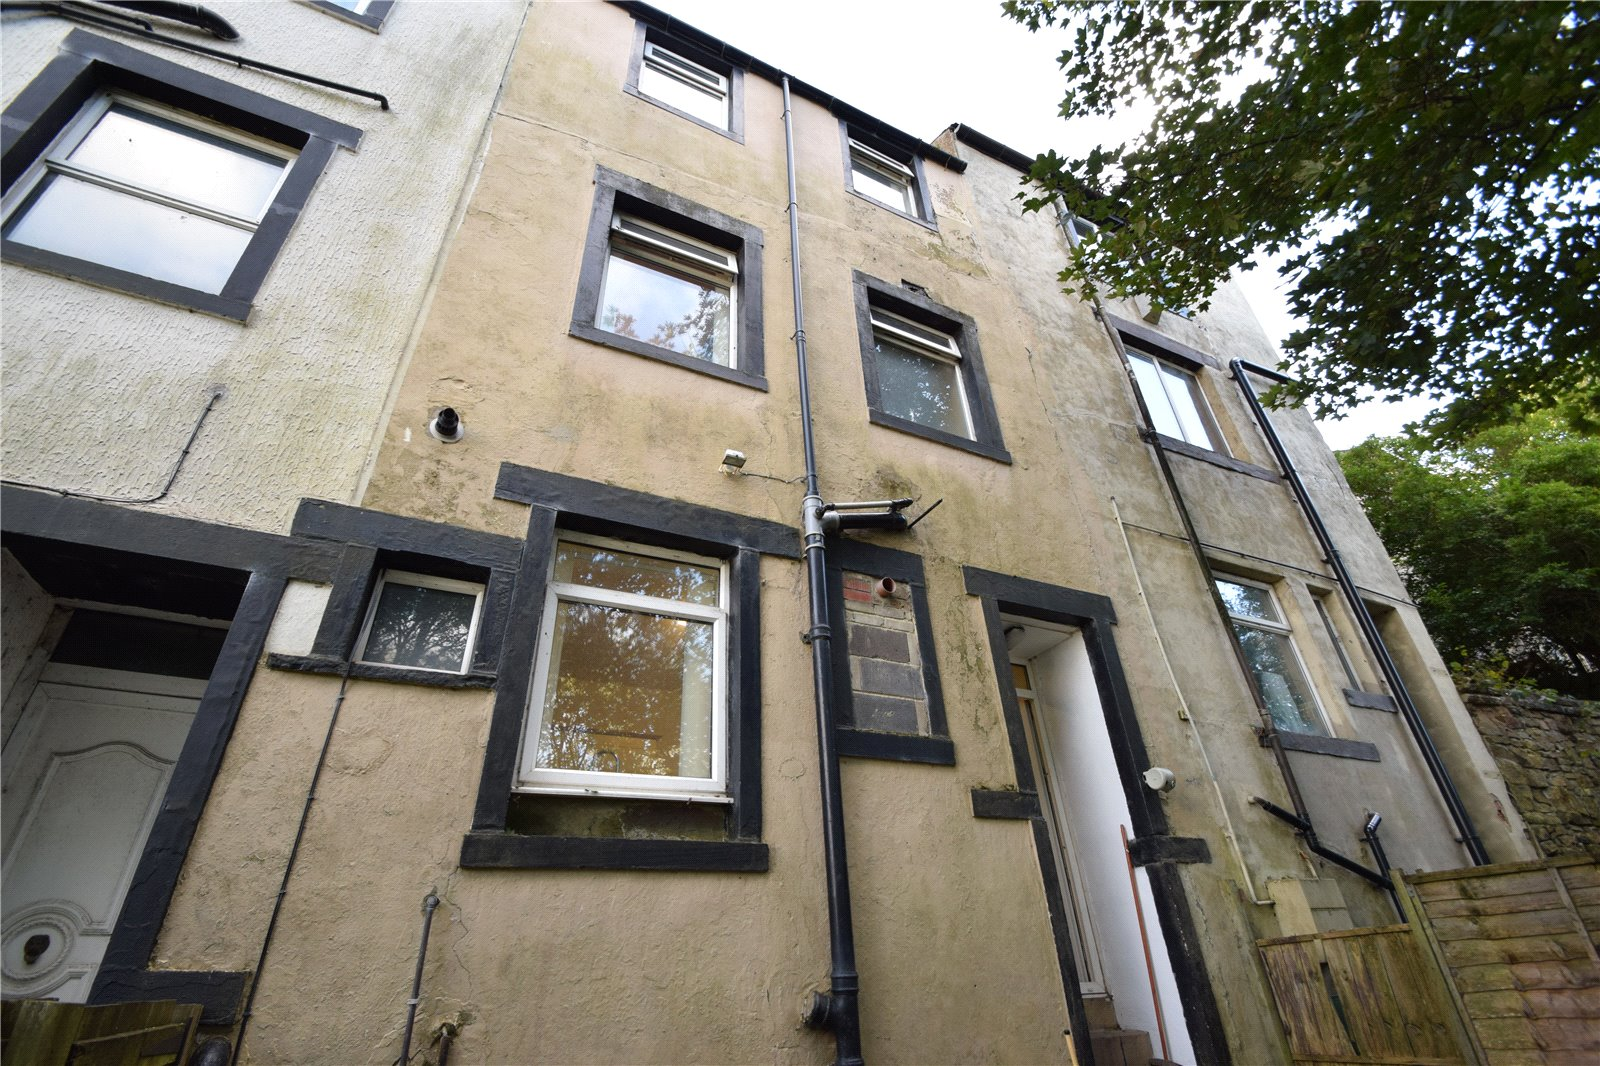 Yorkshire Terrace: Whitegates Keighley 3 Bedroom House For Sale In Cragg